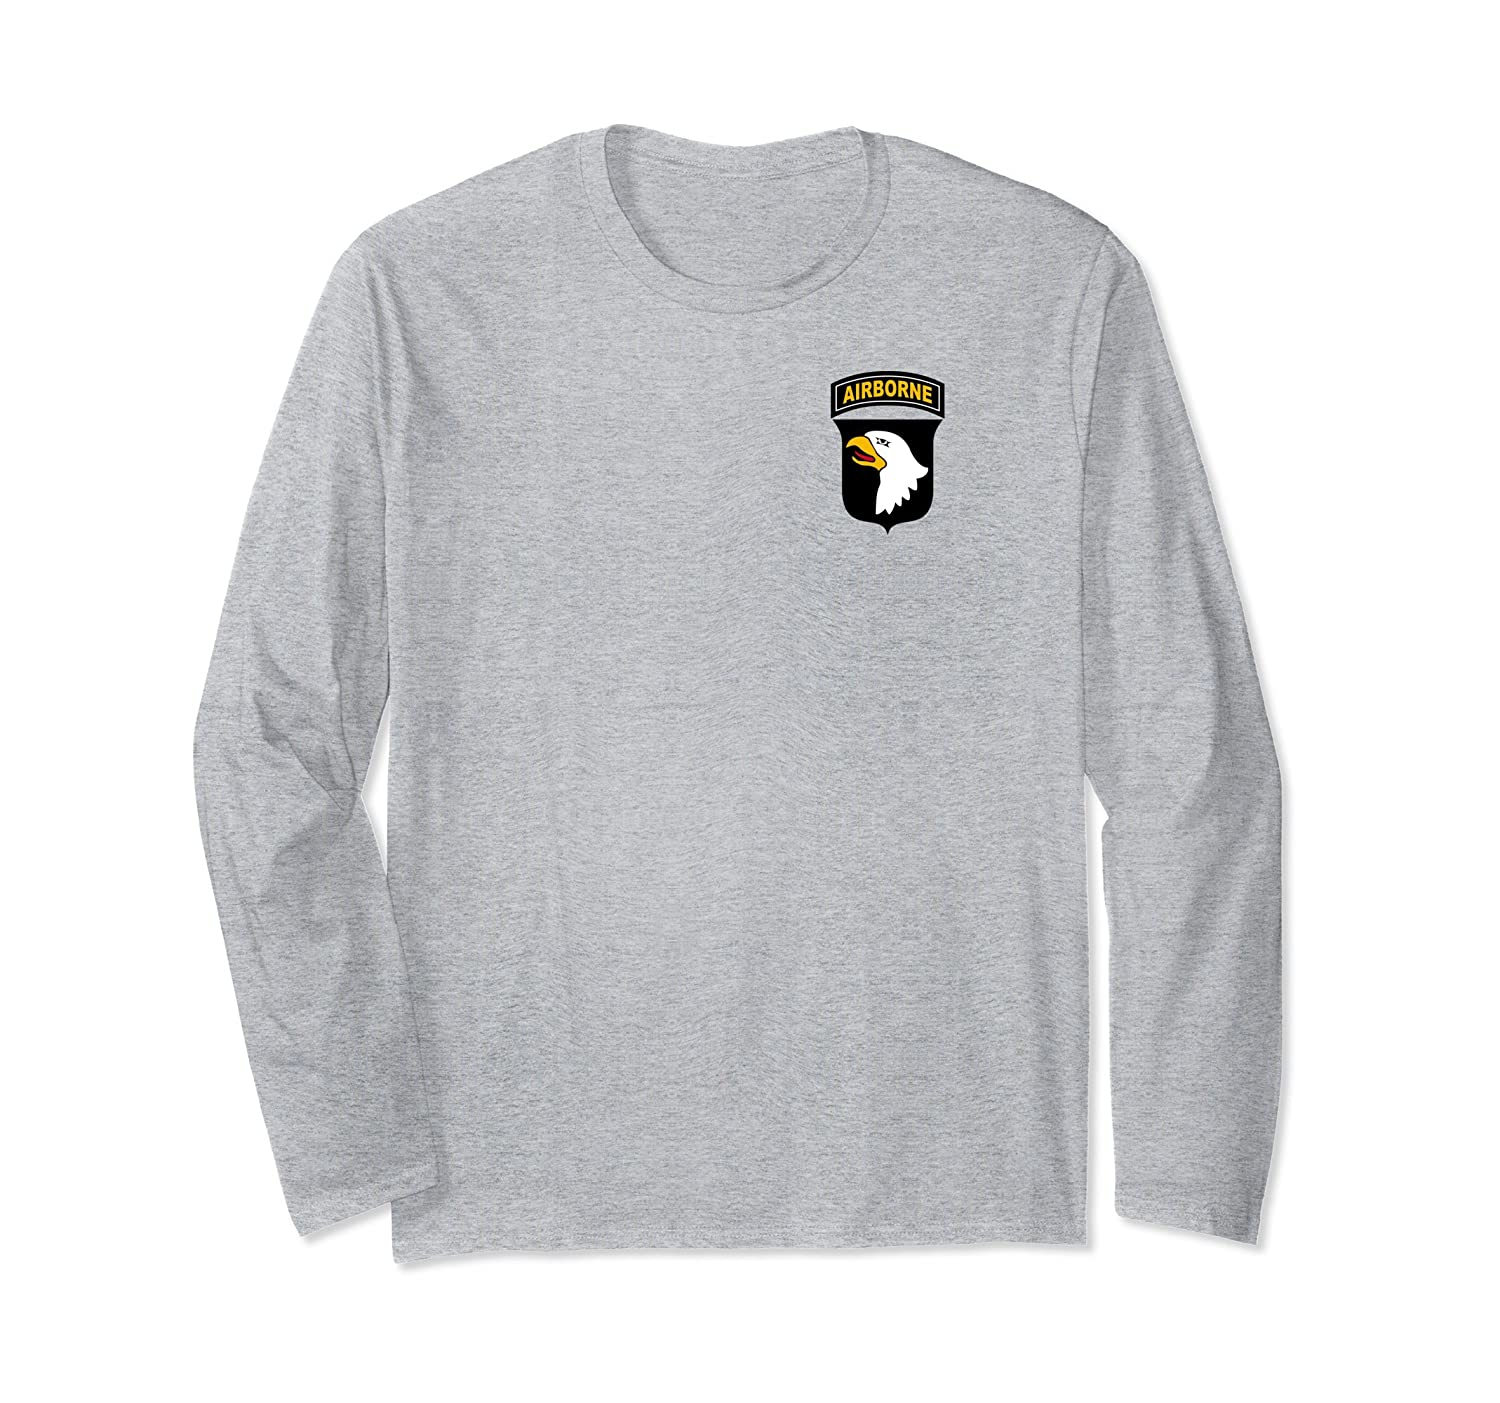 101st Airborne Shirt - 101st Airborne t shirt - long sleeve-mt